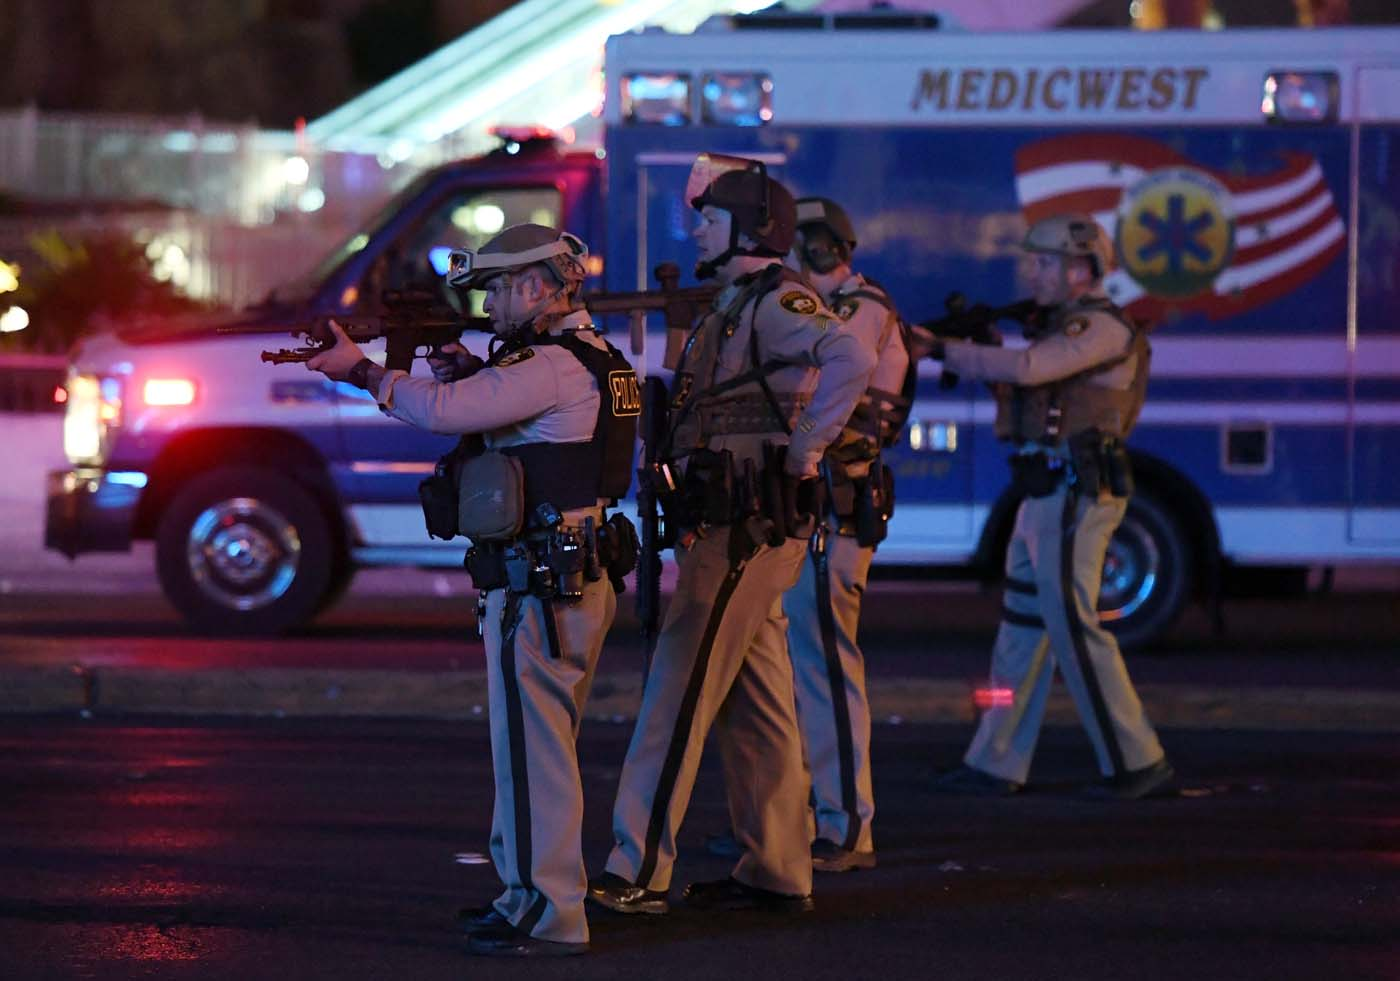 LAS VEGAS, NV - OCTOBER 02: Police officers point their weapons at a car driving down closed Tropicana Ave. near Las Vegas Boulevard after a reported mass shooting at a country music festival nearby on October 2, 2017 in Las Vegas, Nevada. A gunman has opened fire on a music festival in Las Vegas, leaving at least 2 people dead. Police have confirmed that one suspect has been shot. The investigation is ongoing. Ethan Miller/Getty Images/AFP